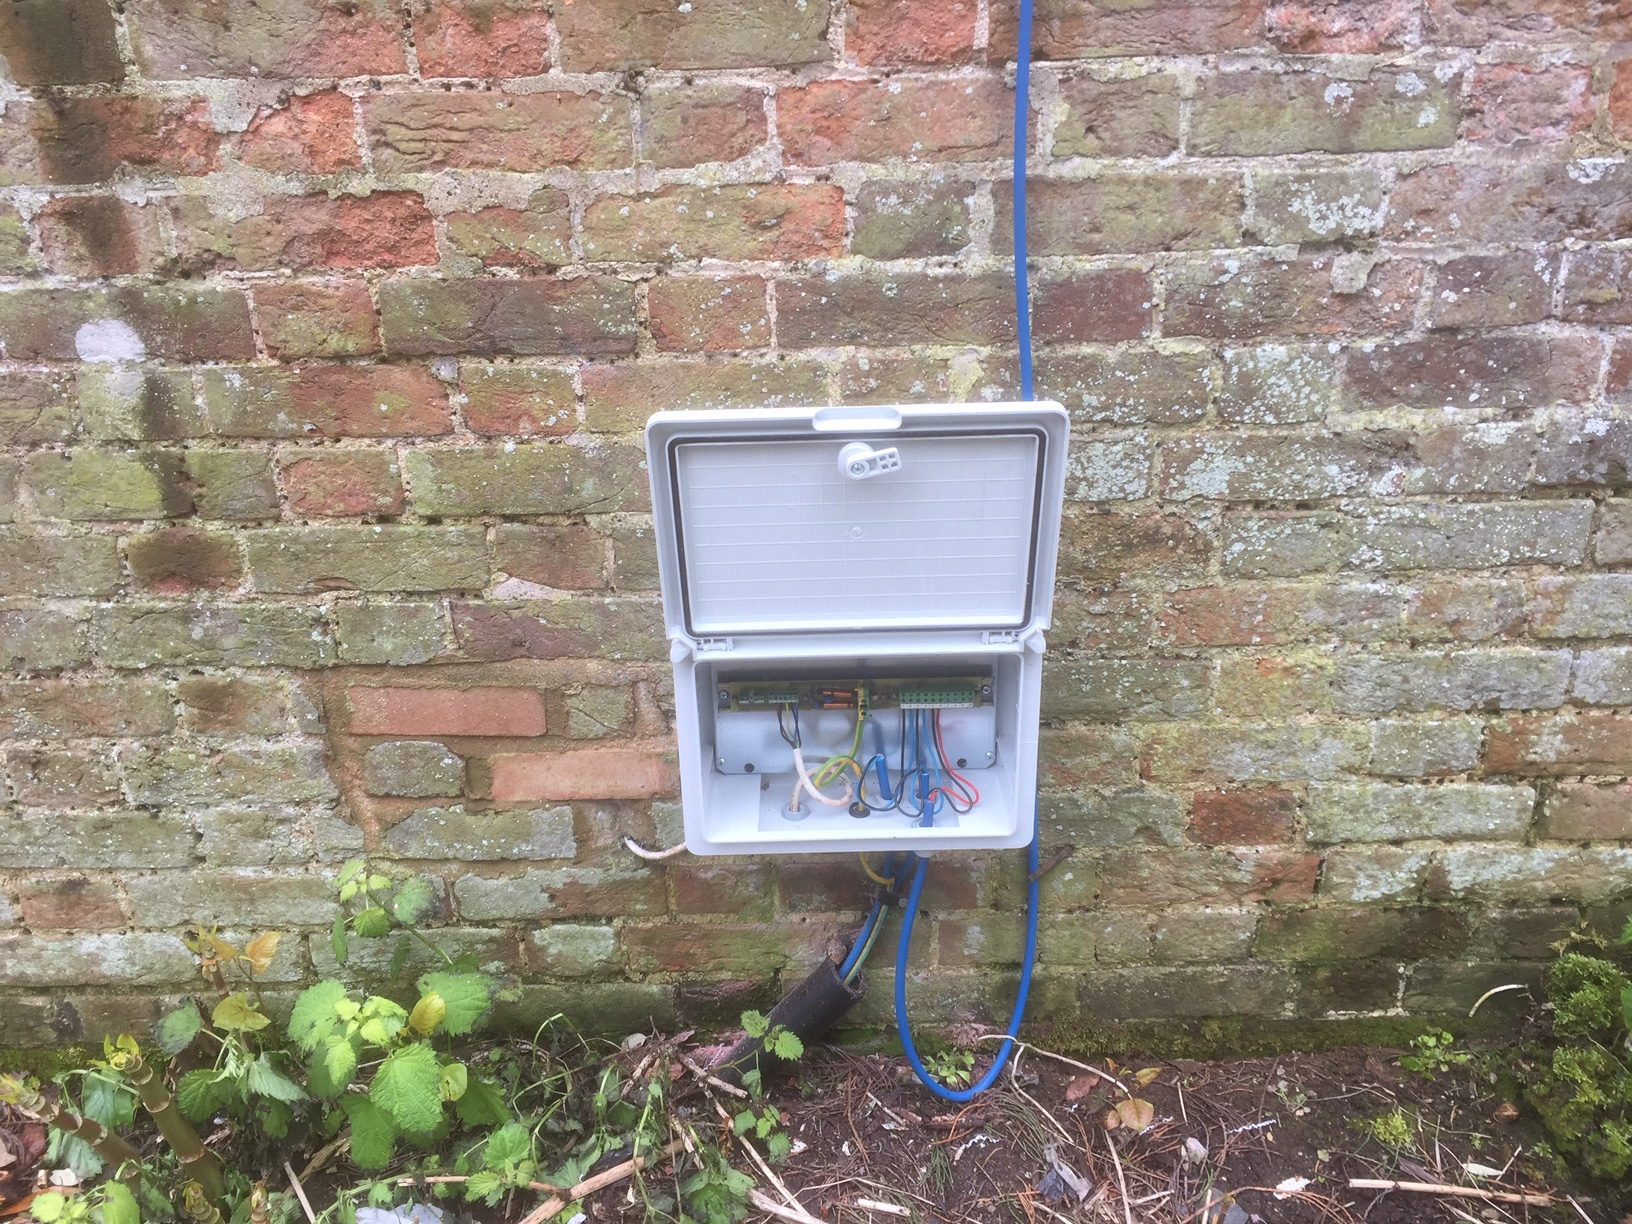 Control system checks for irrigation system servicing